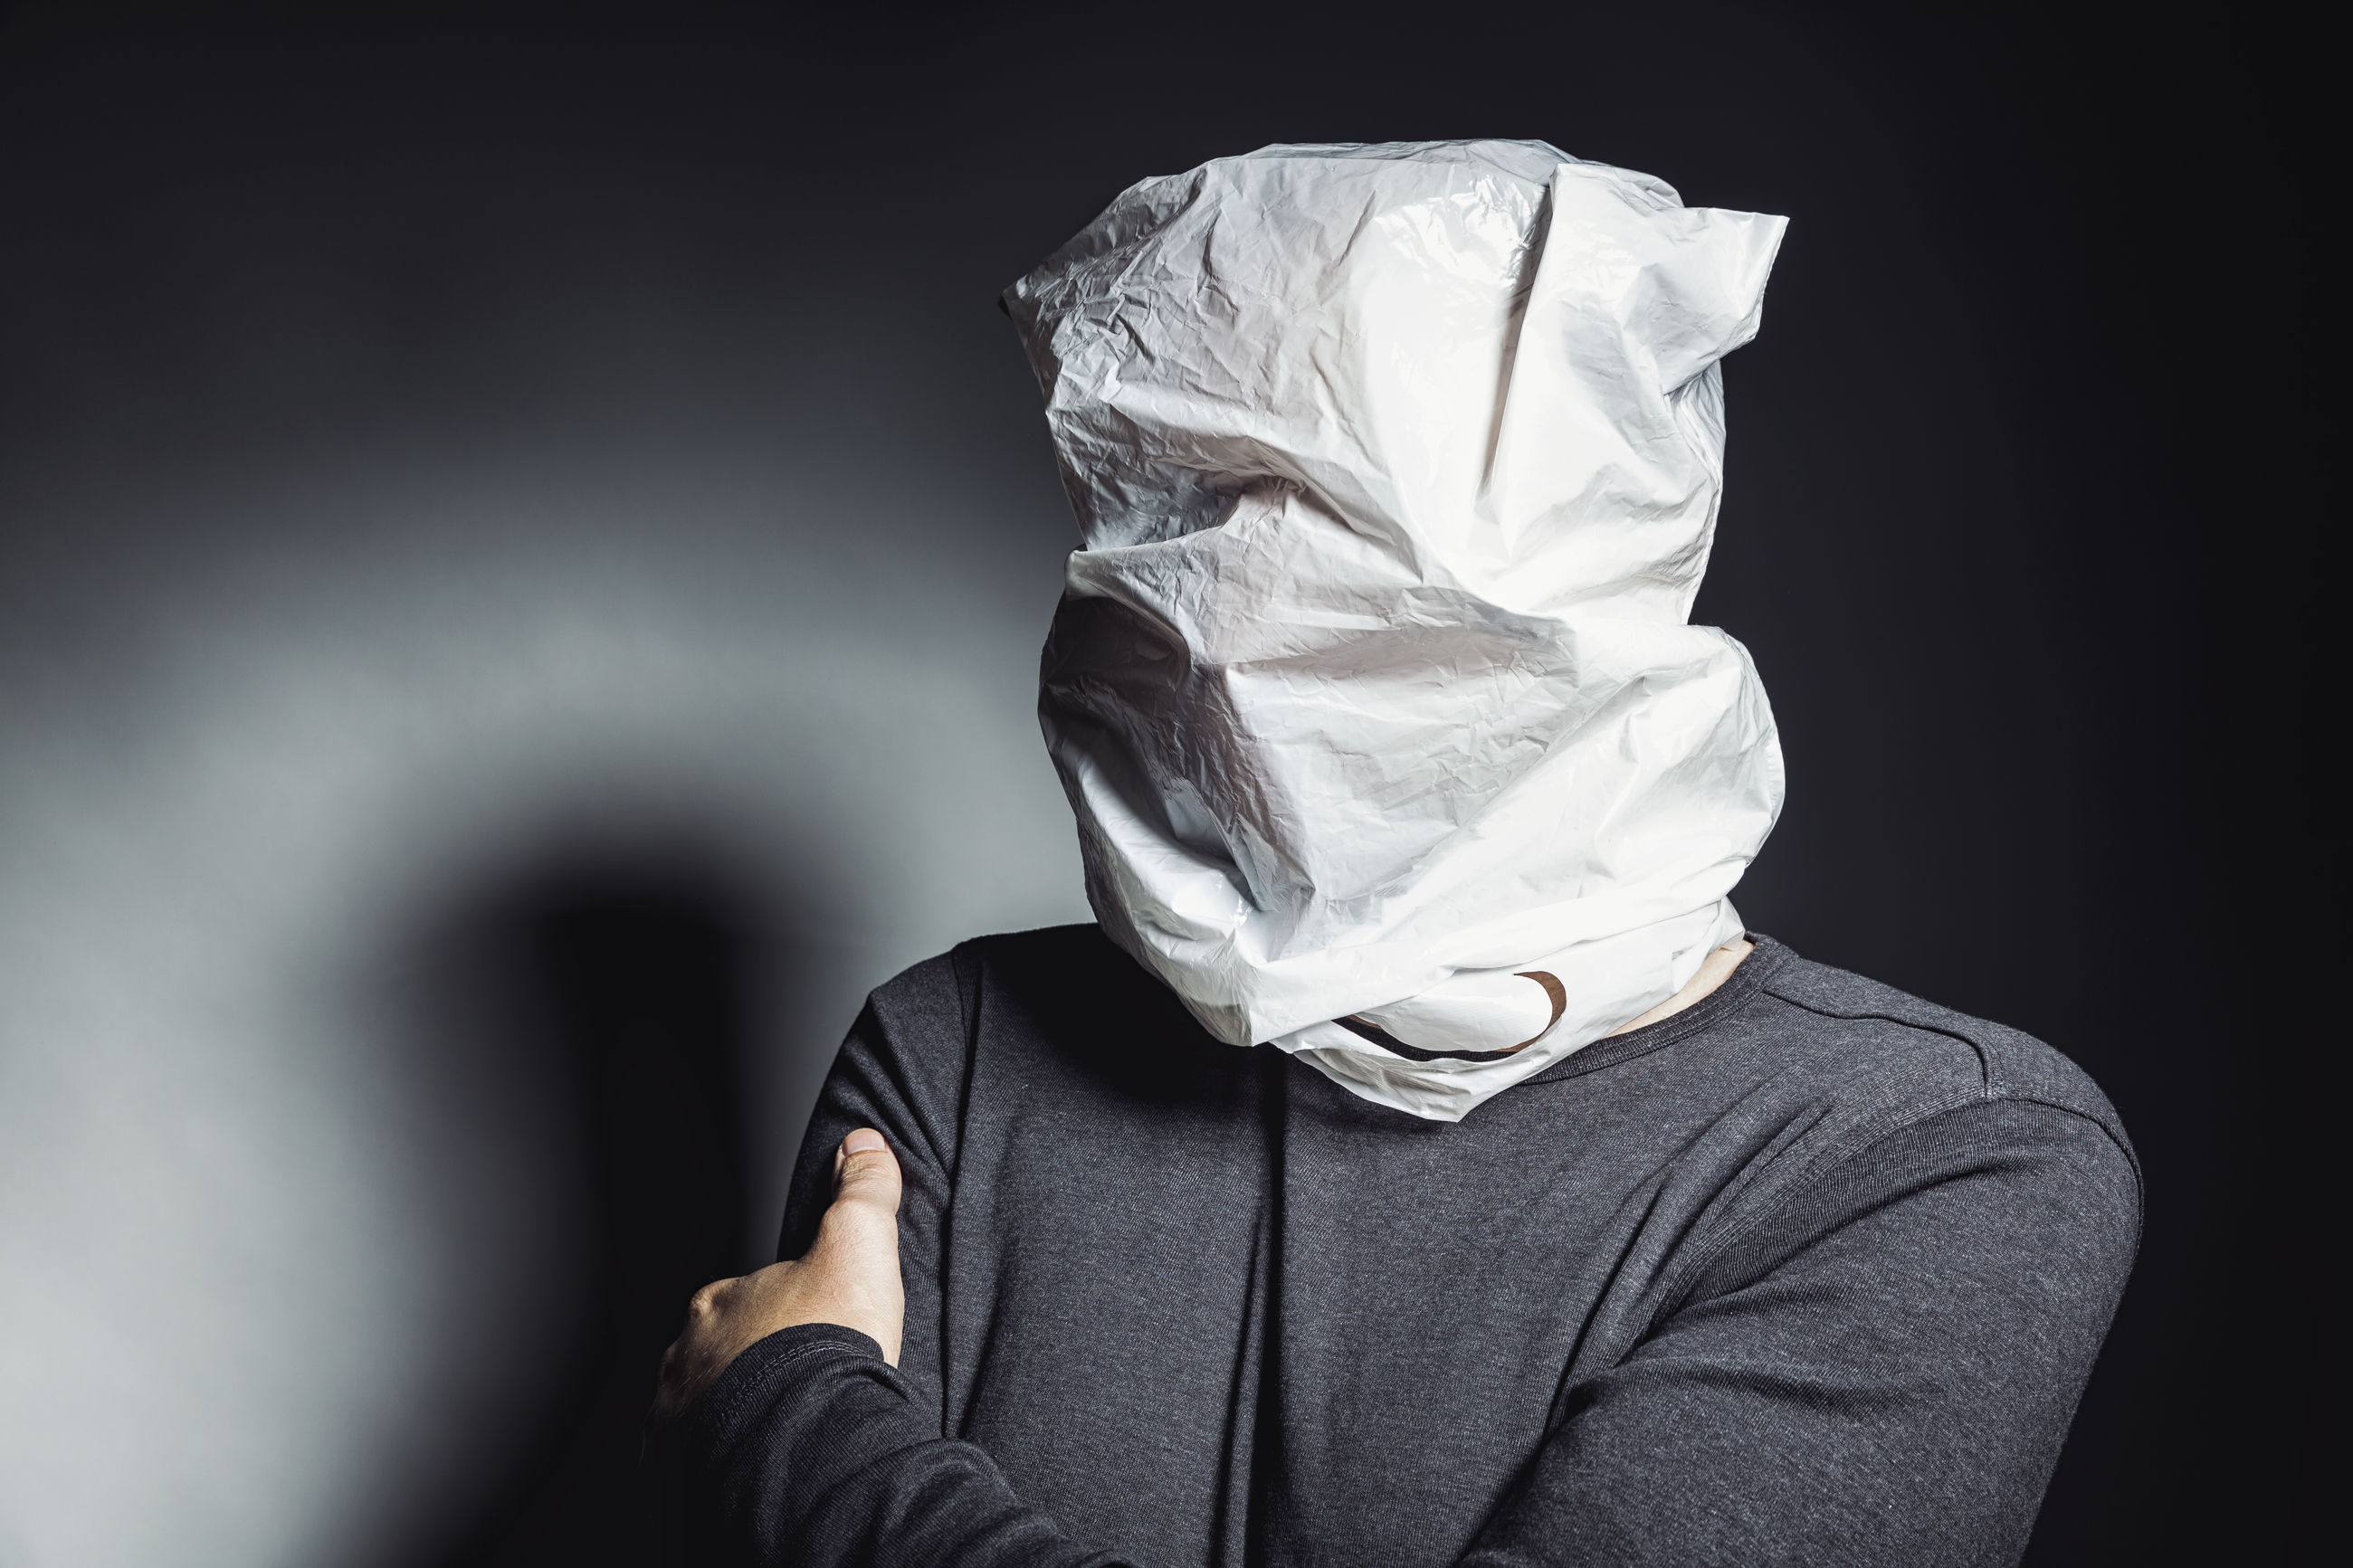 Close-up of woman wearing plastic bag in head against black background